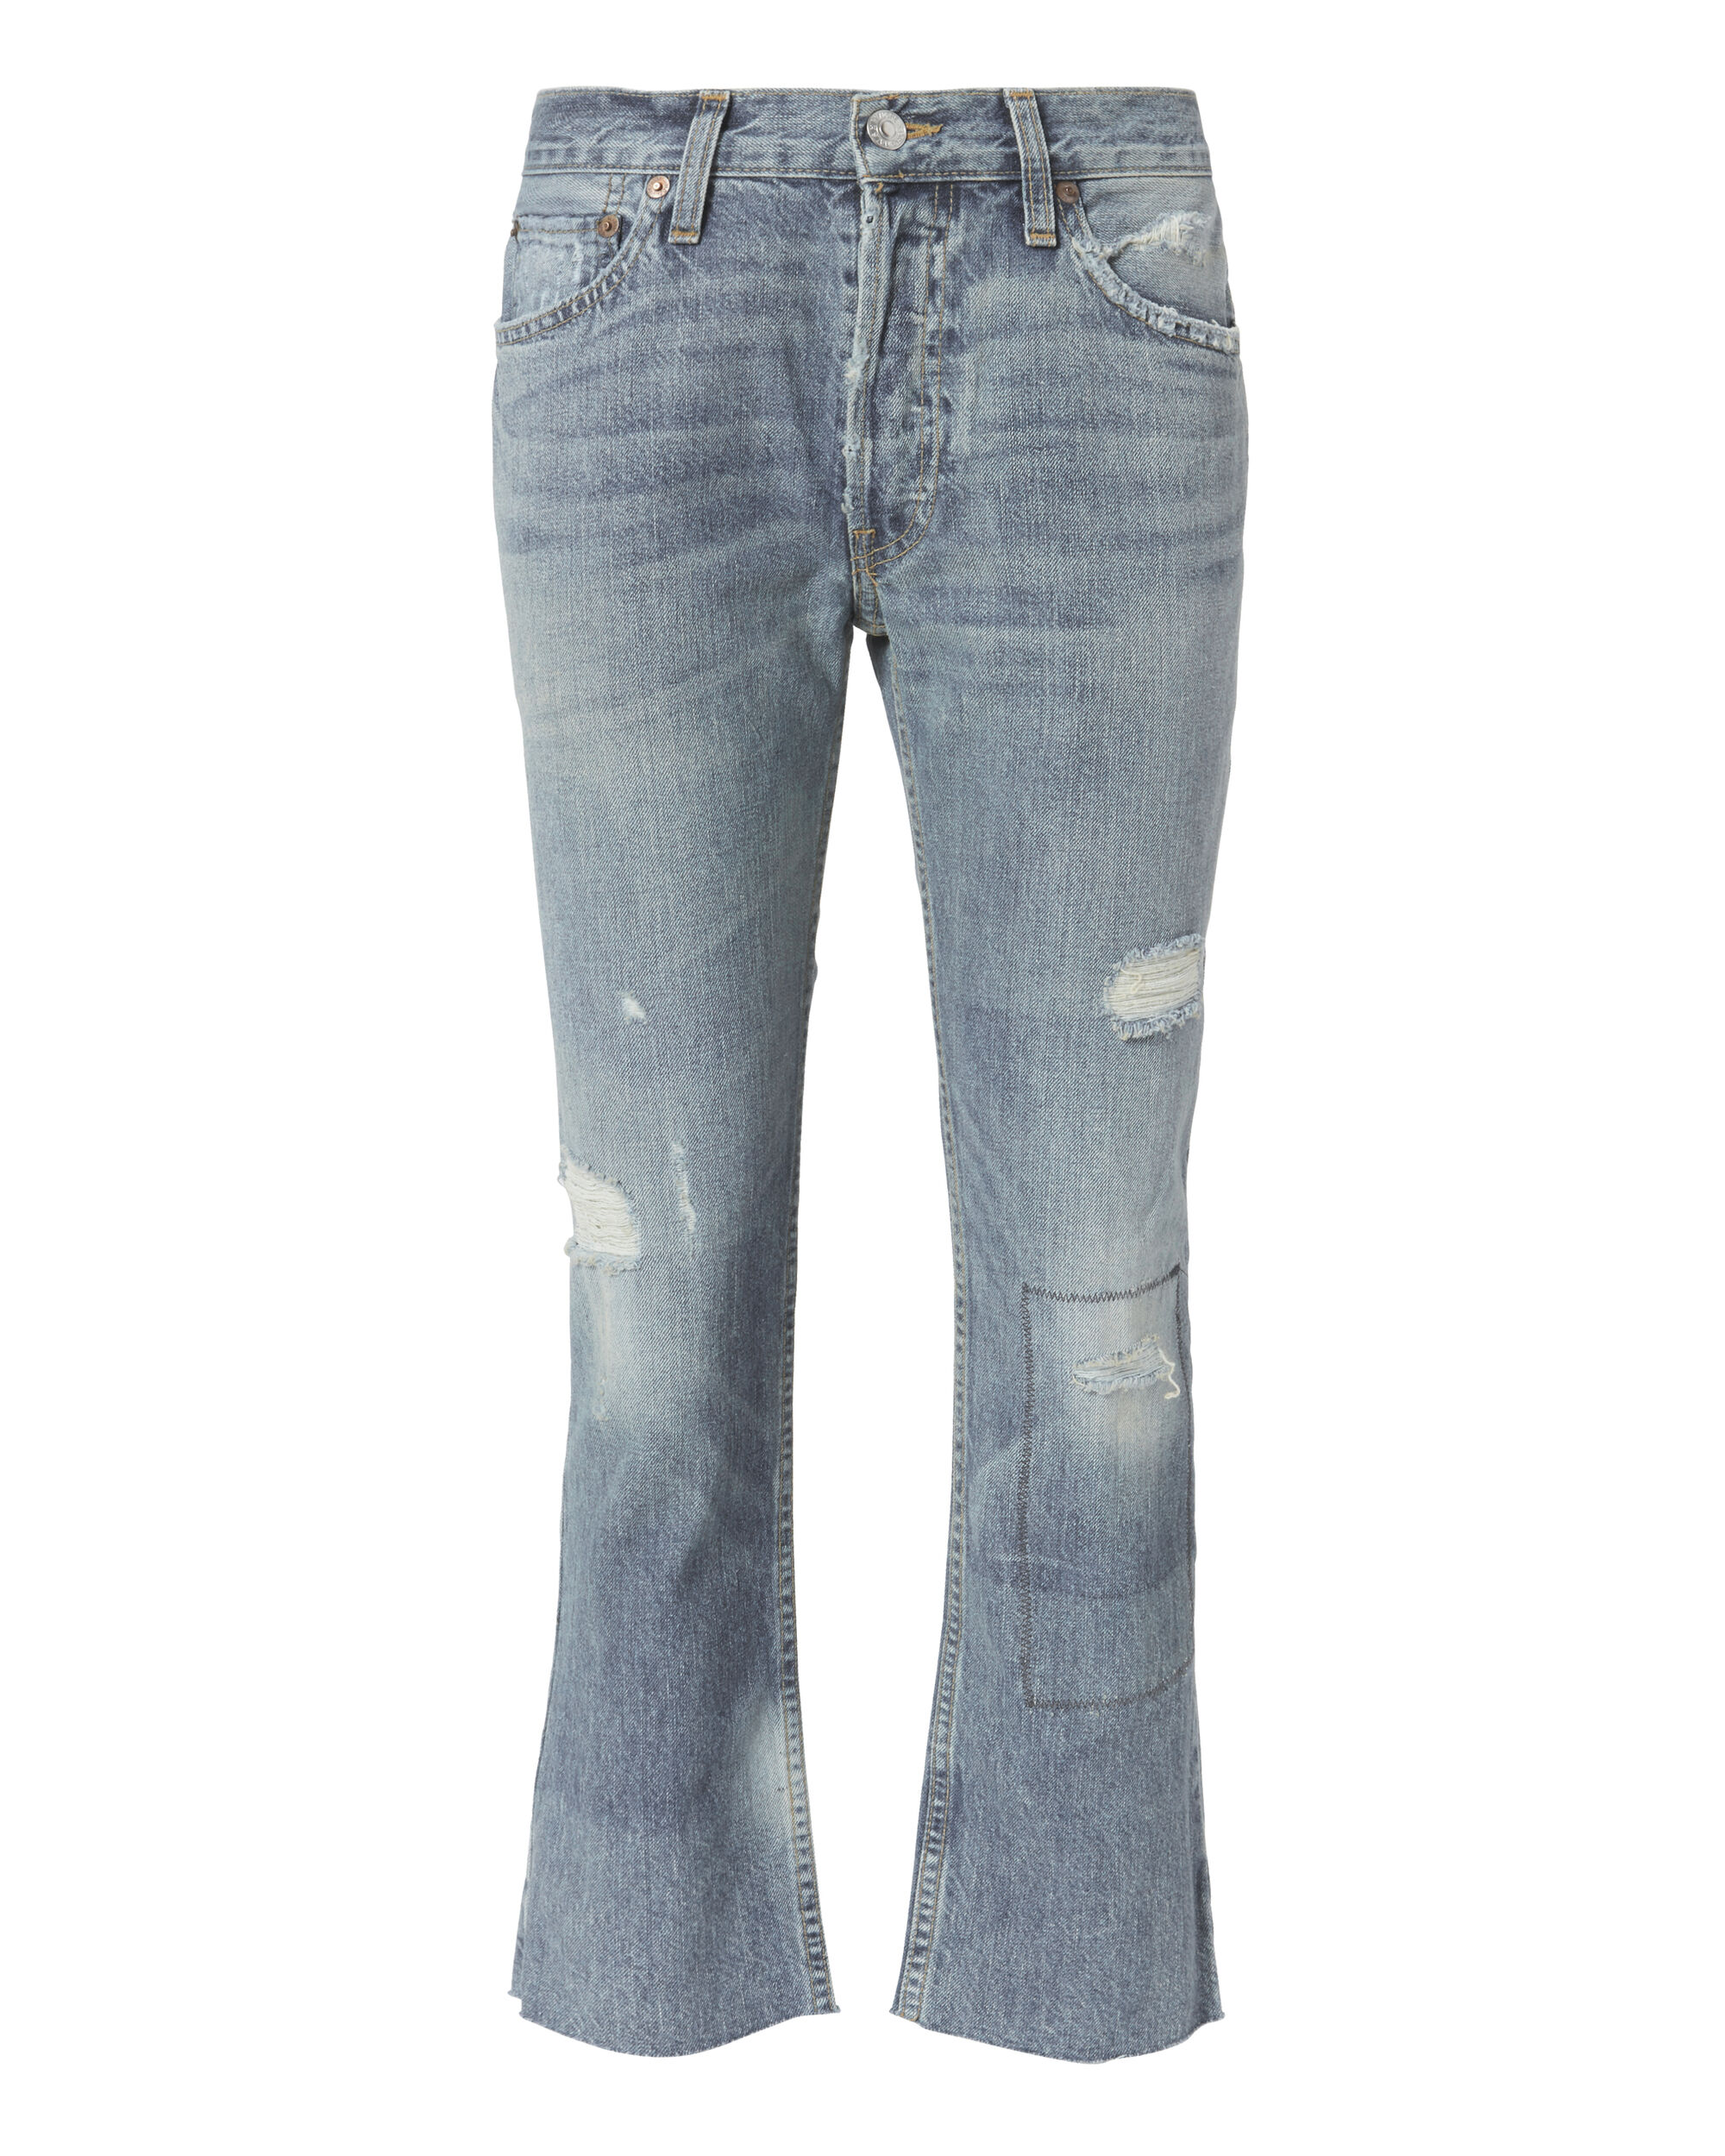 Relaxed Crop Ghost Patch Original Jeans, DENIM, hi-res